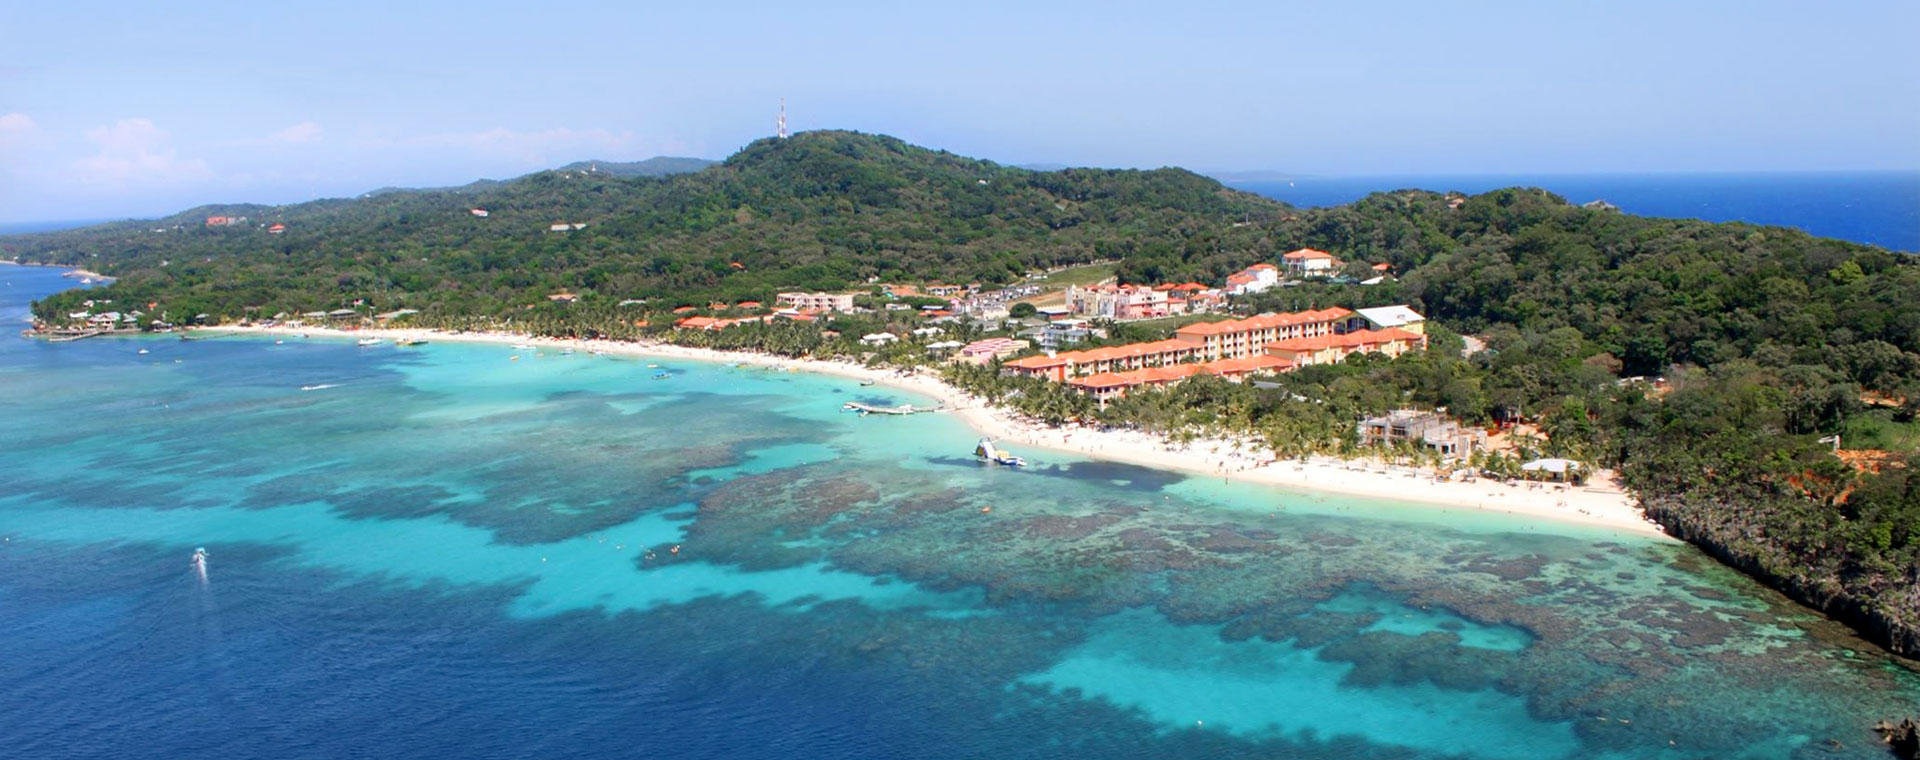 About Roatan, a view of West Bay Beach